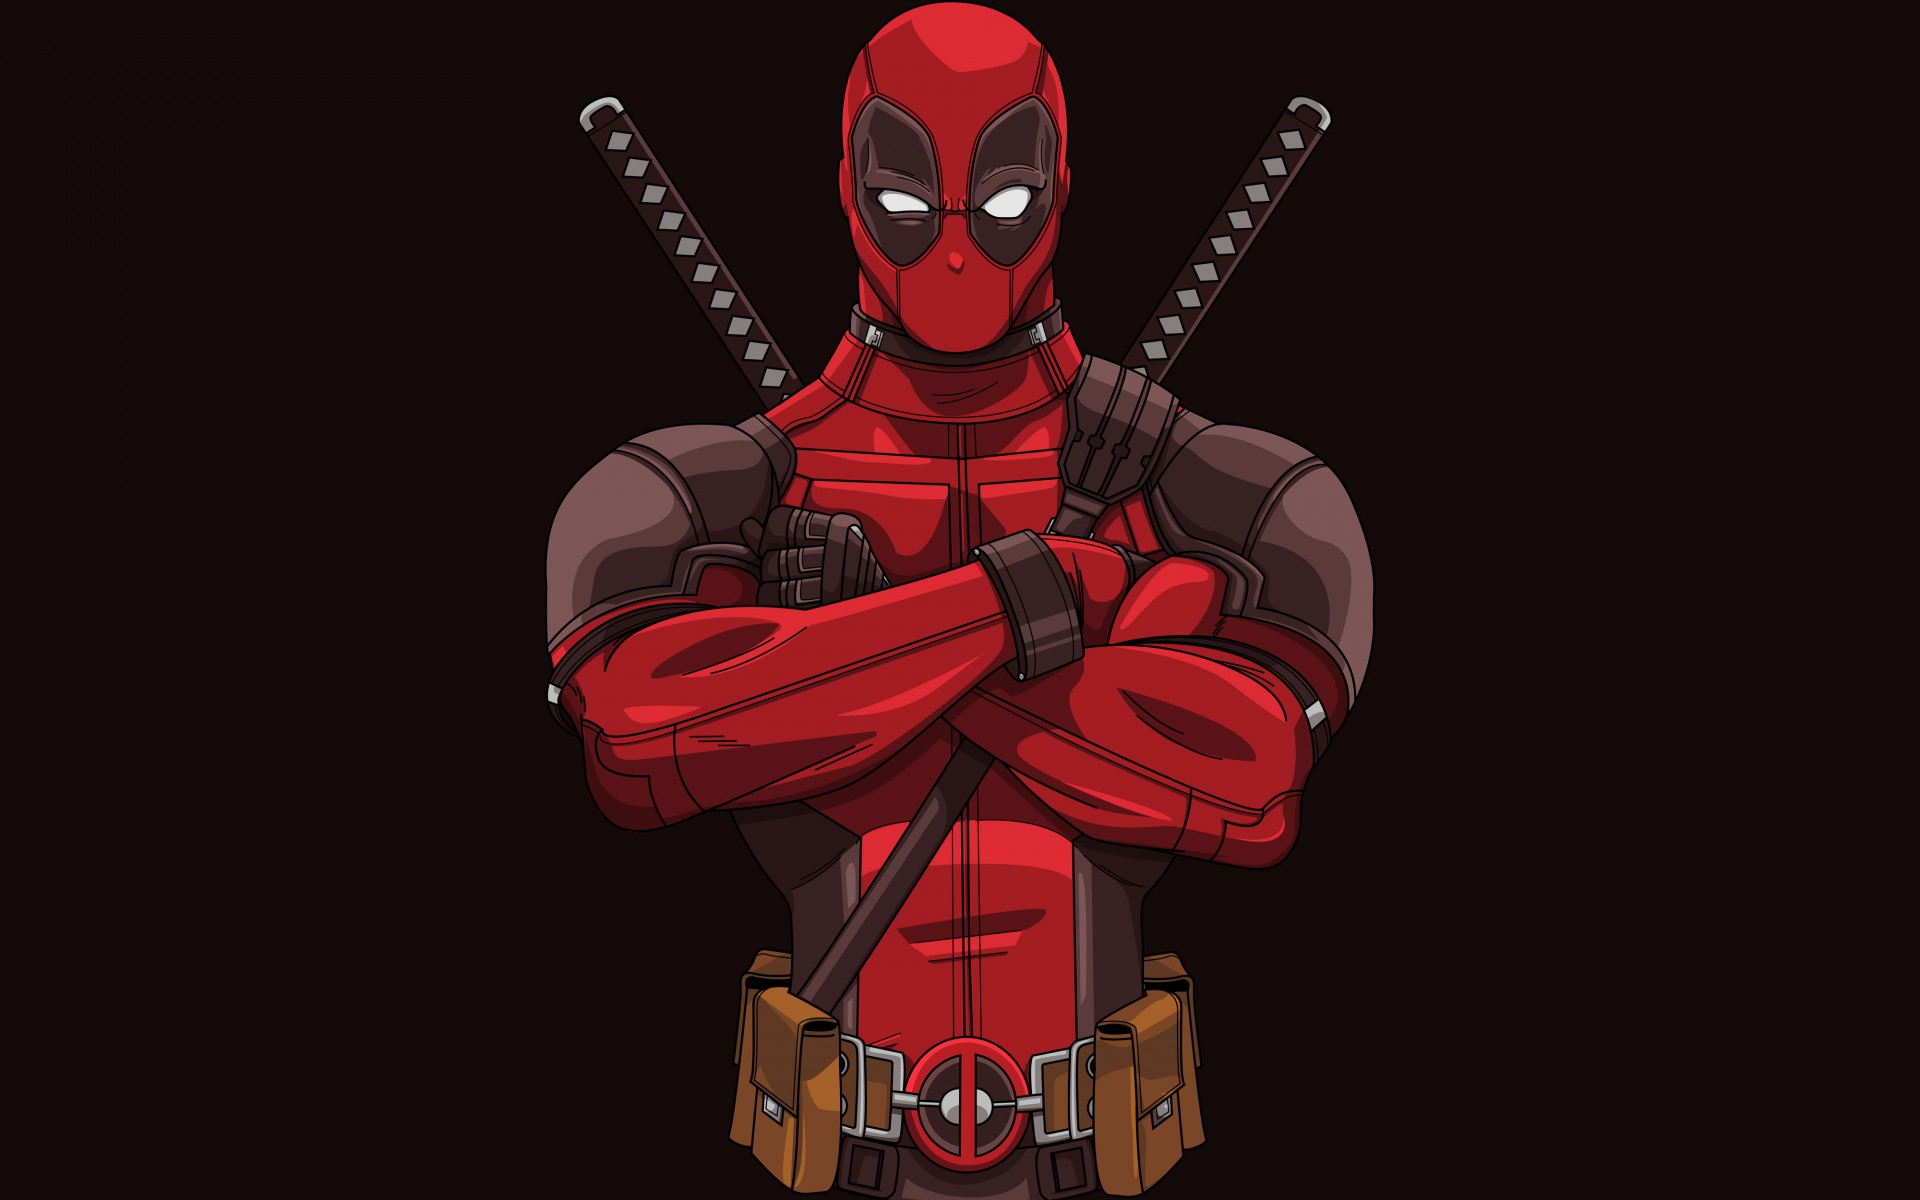 How To Download Live Wallpapers For Iphone Deadpool Minimal Artwork 4k 8k Wallpapers Hd Wallpapers